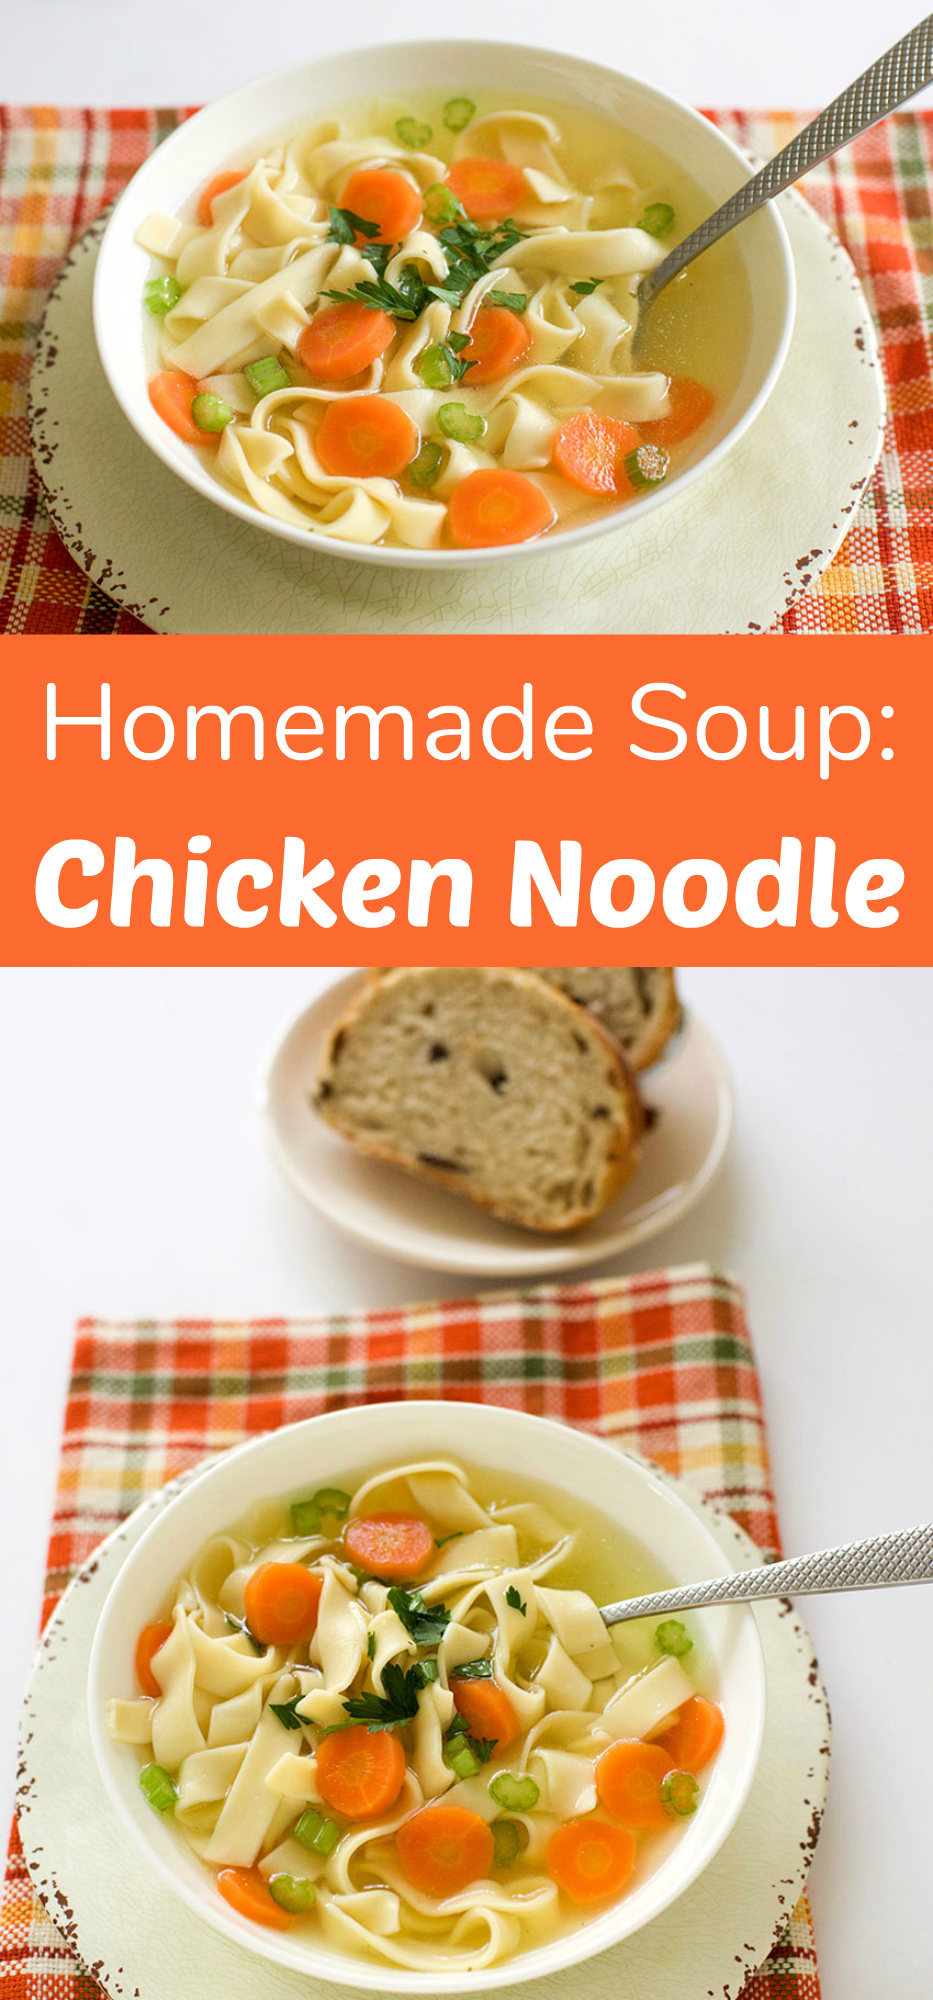 Delish Homemade Chicken Noodle Soup